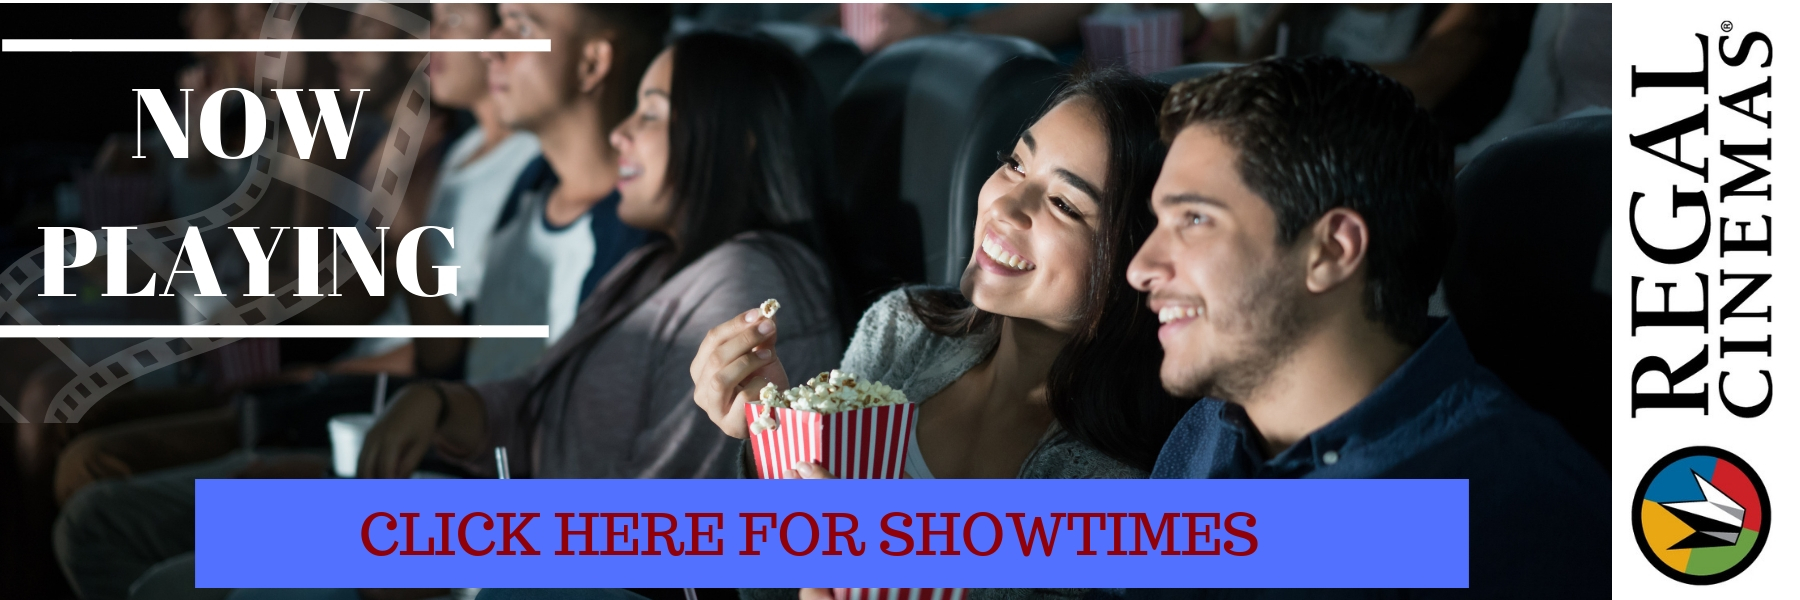 Regal Showtime Website Banner